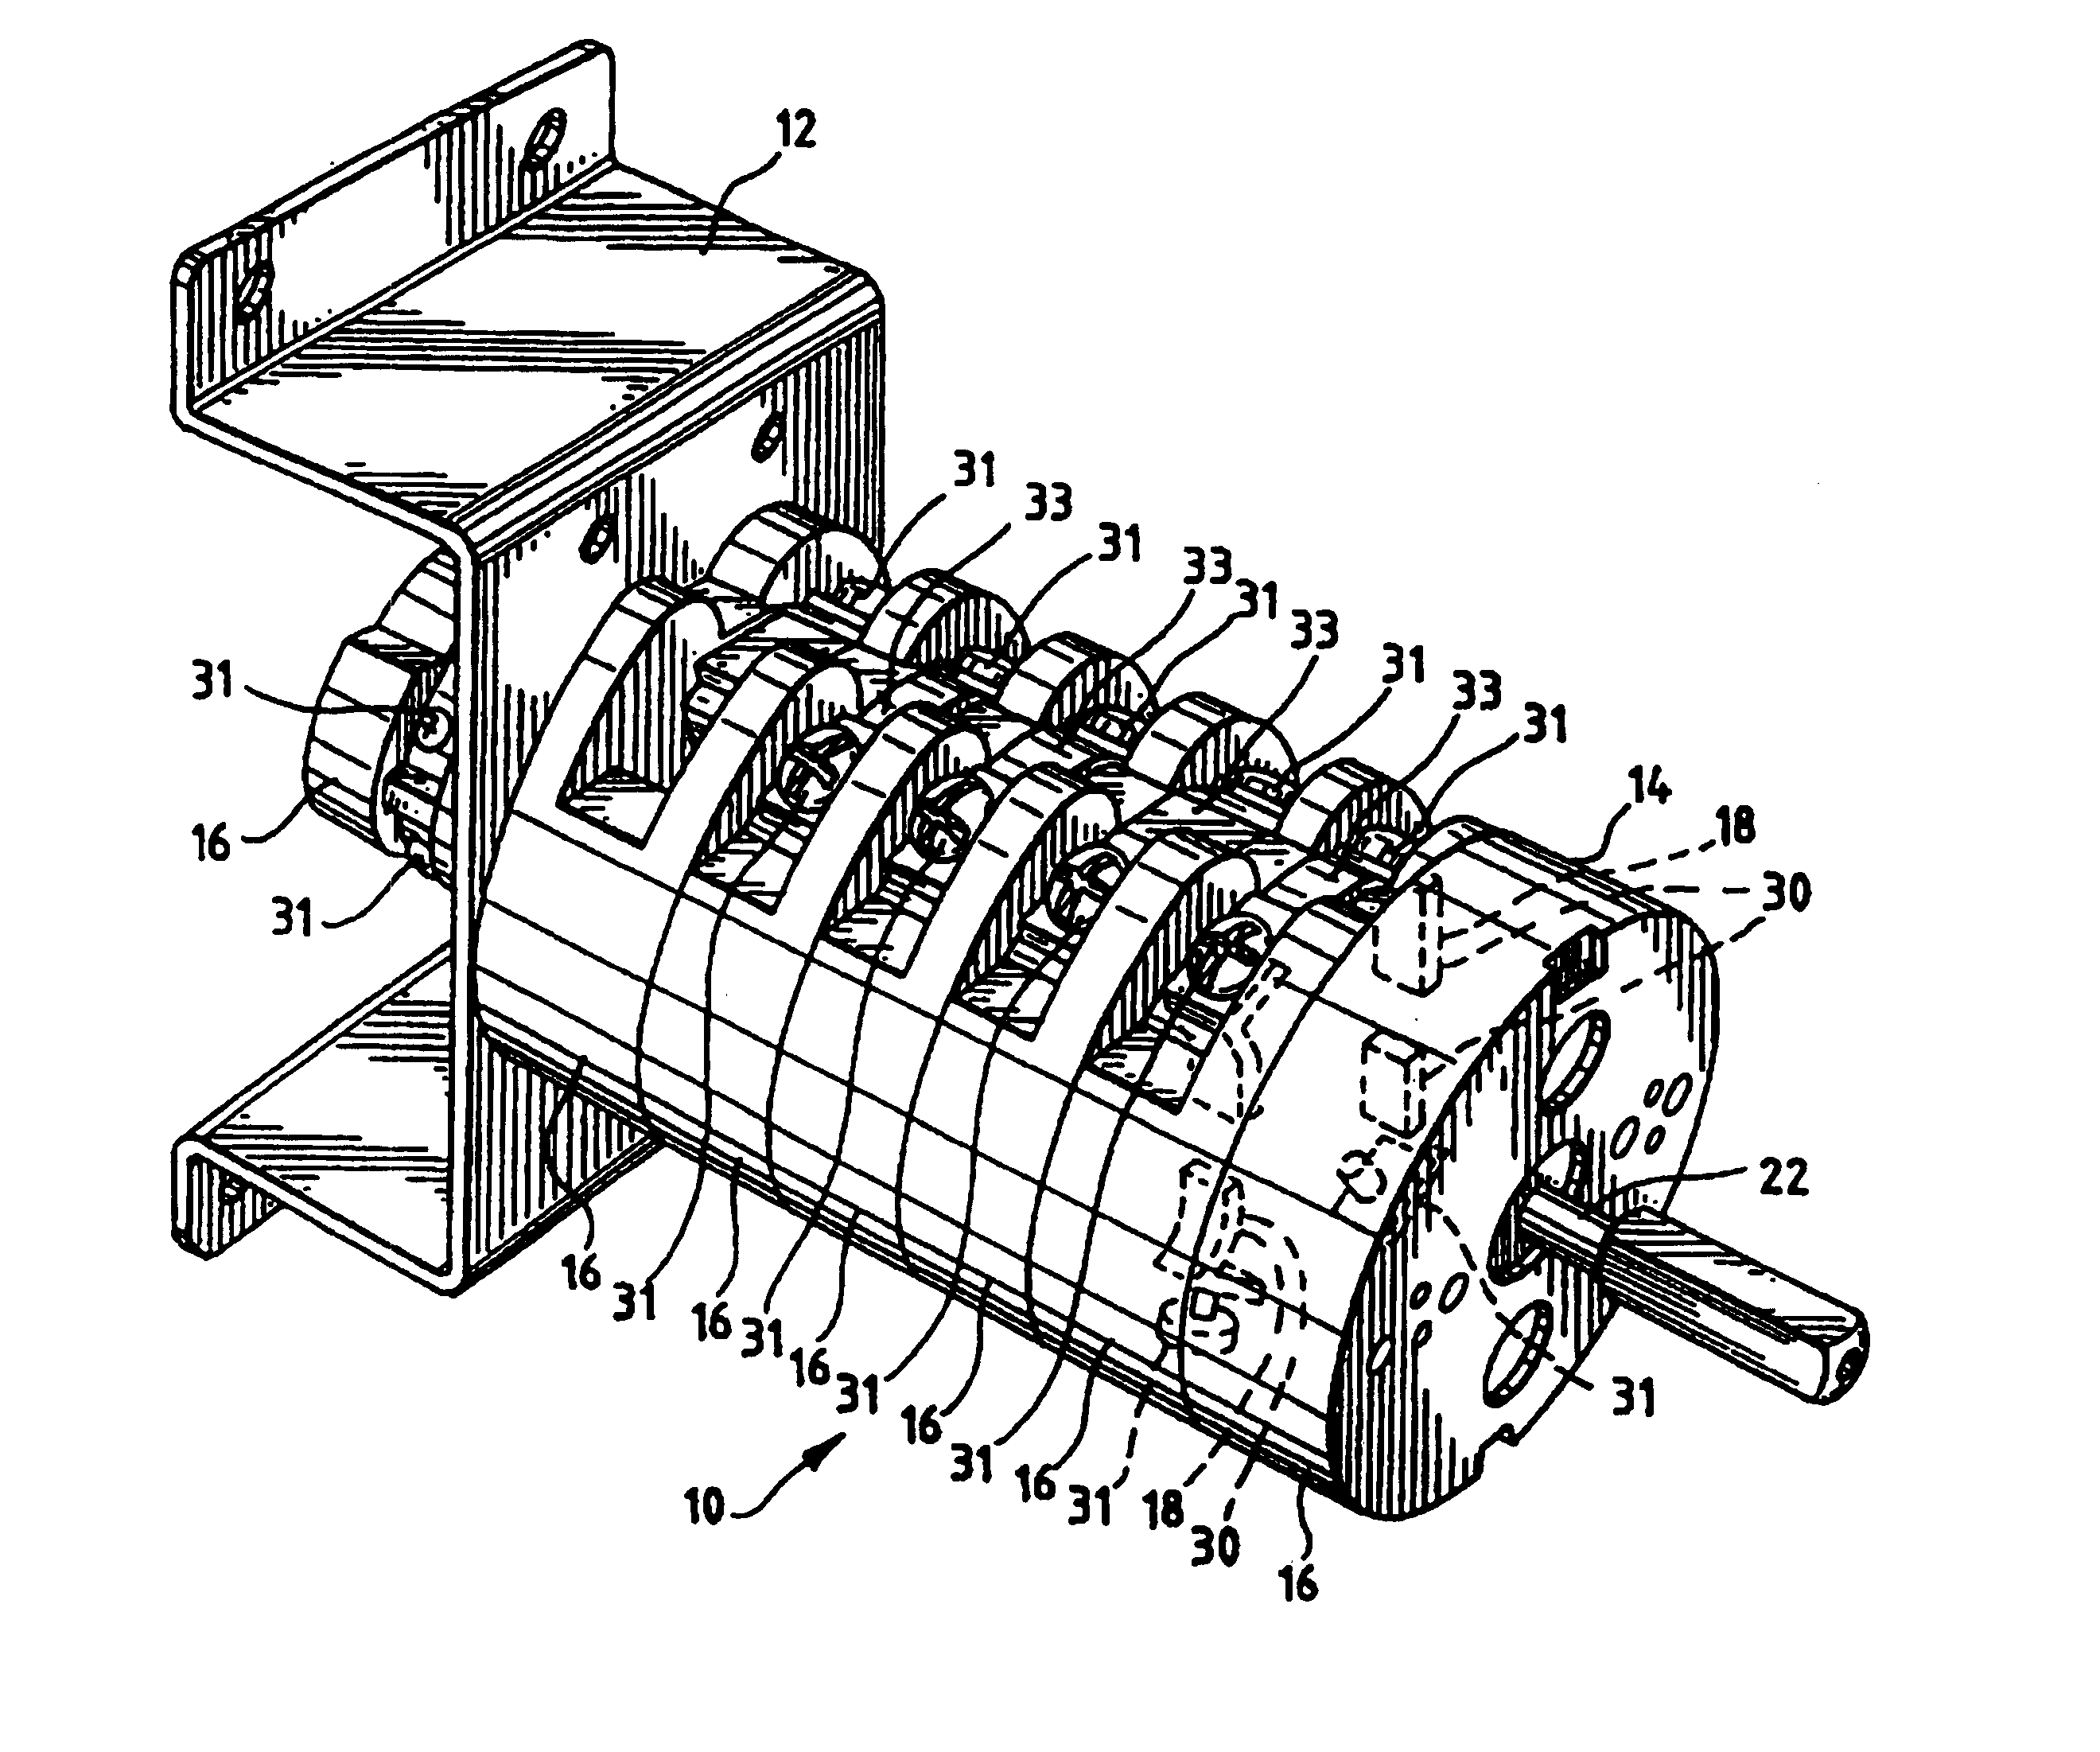 patent usre40161 cam operated inverter bypass safety switch patent drawing